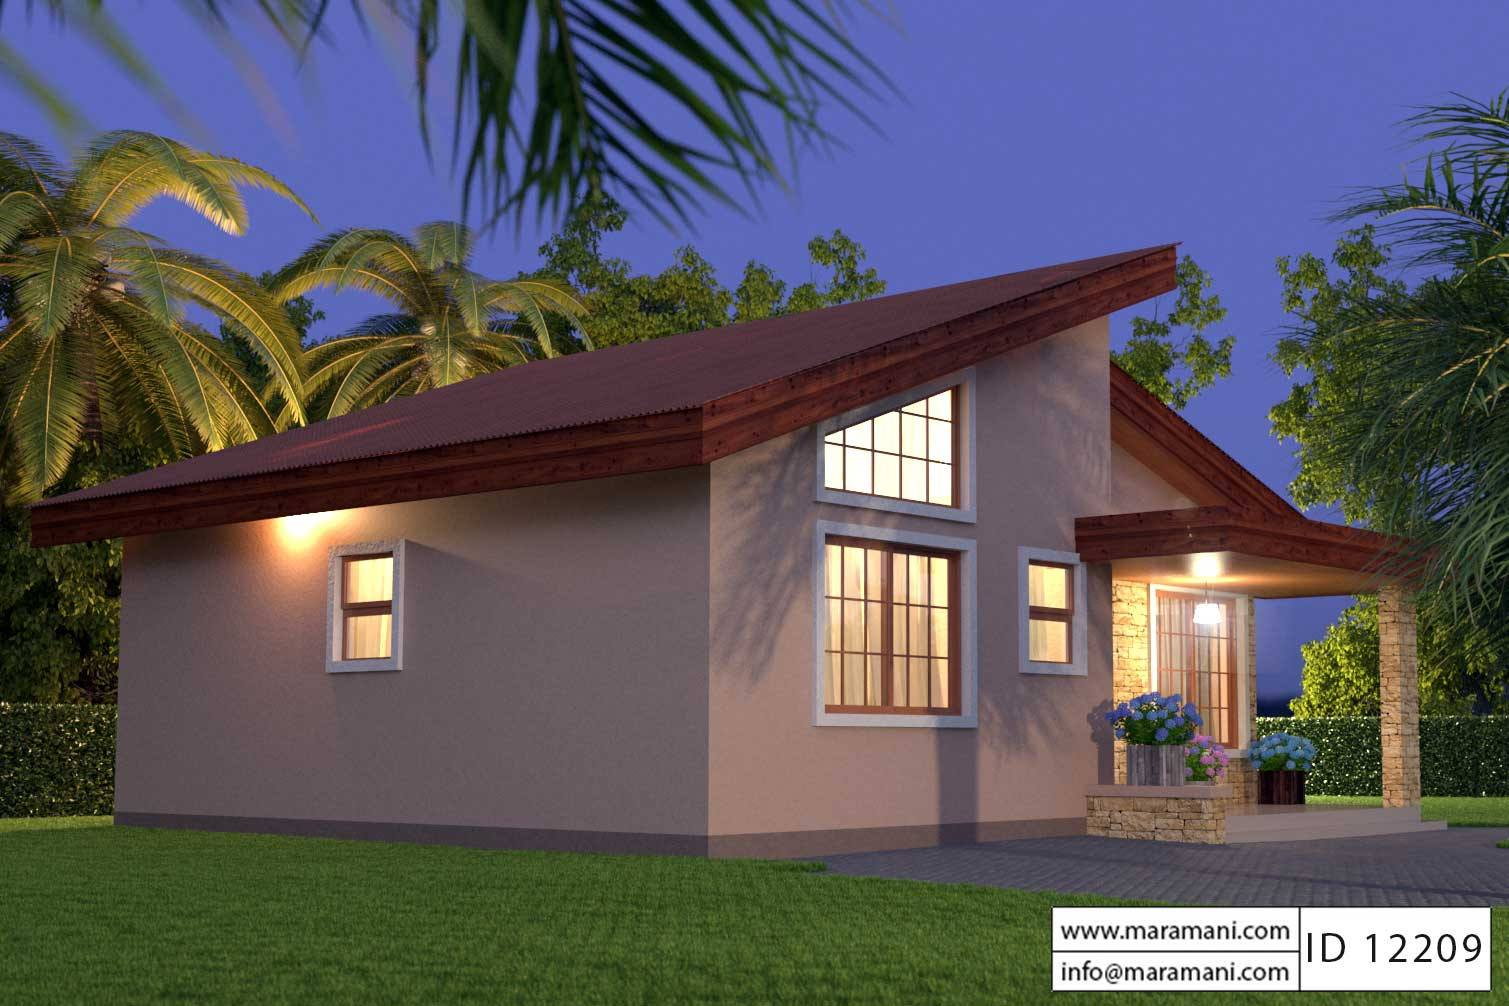 small 2 bedroom homes unique small house plan id12209 floor plans by maramani 17082